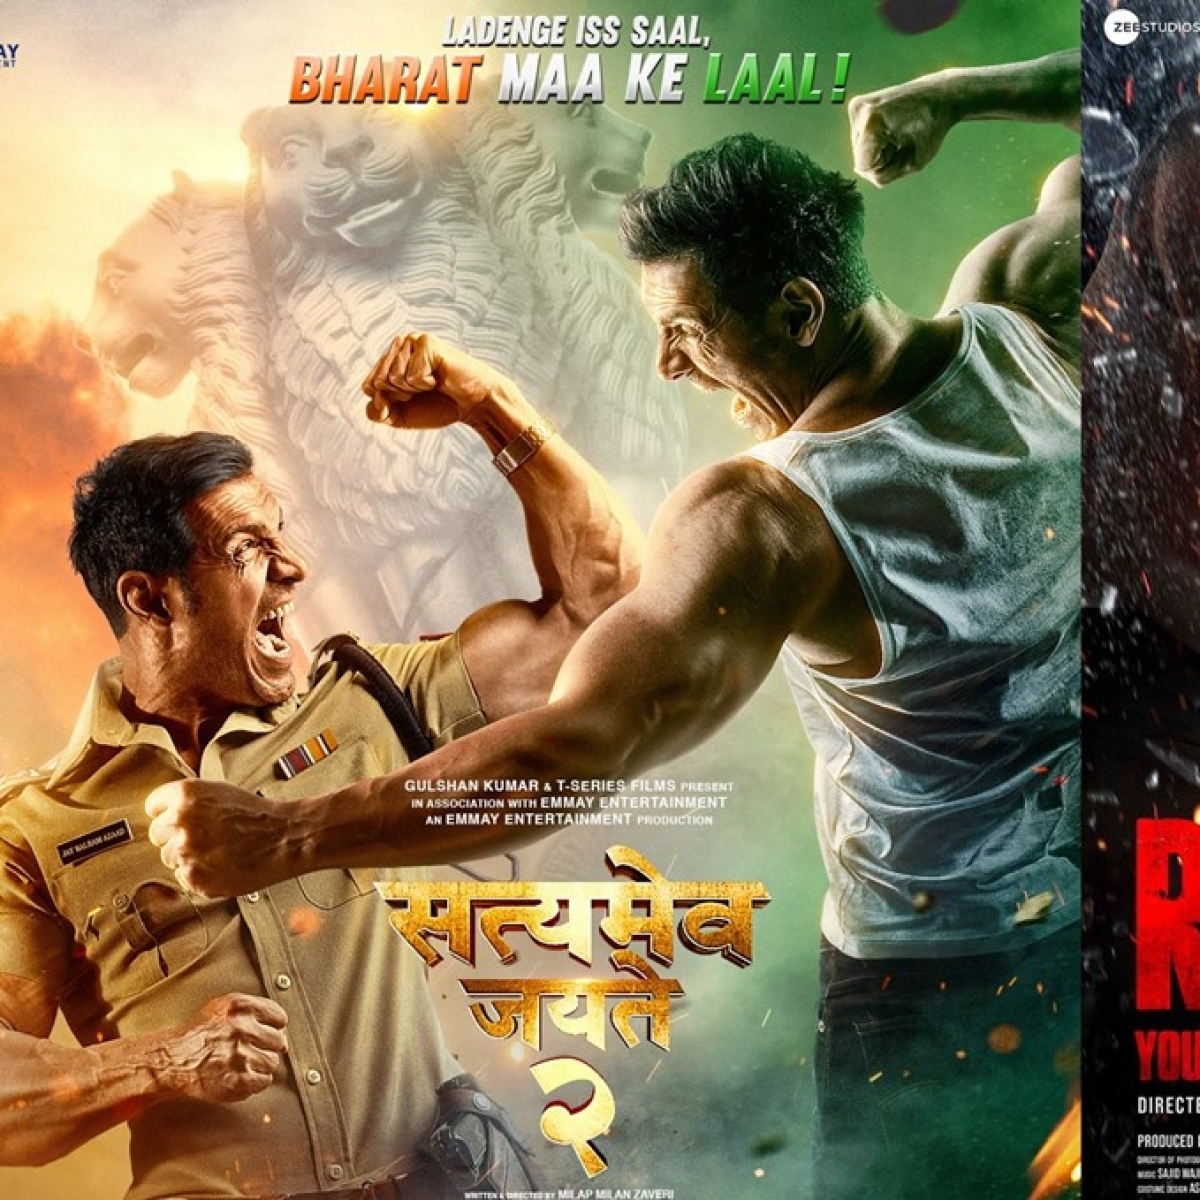 John Abraham's 'Satyameva Jayate 2' to clash with Salman Khan's 'Radhe' on Eid 2021